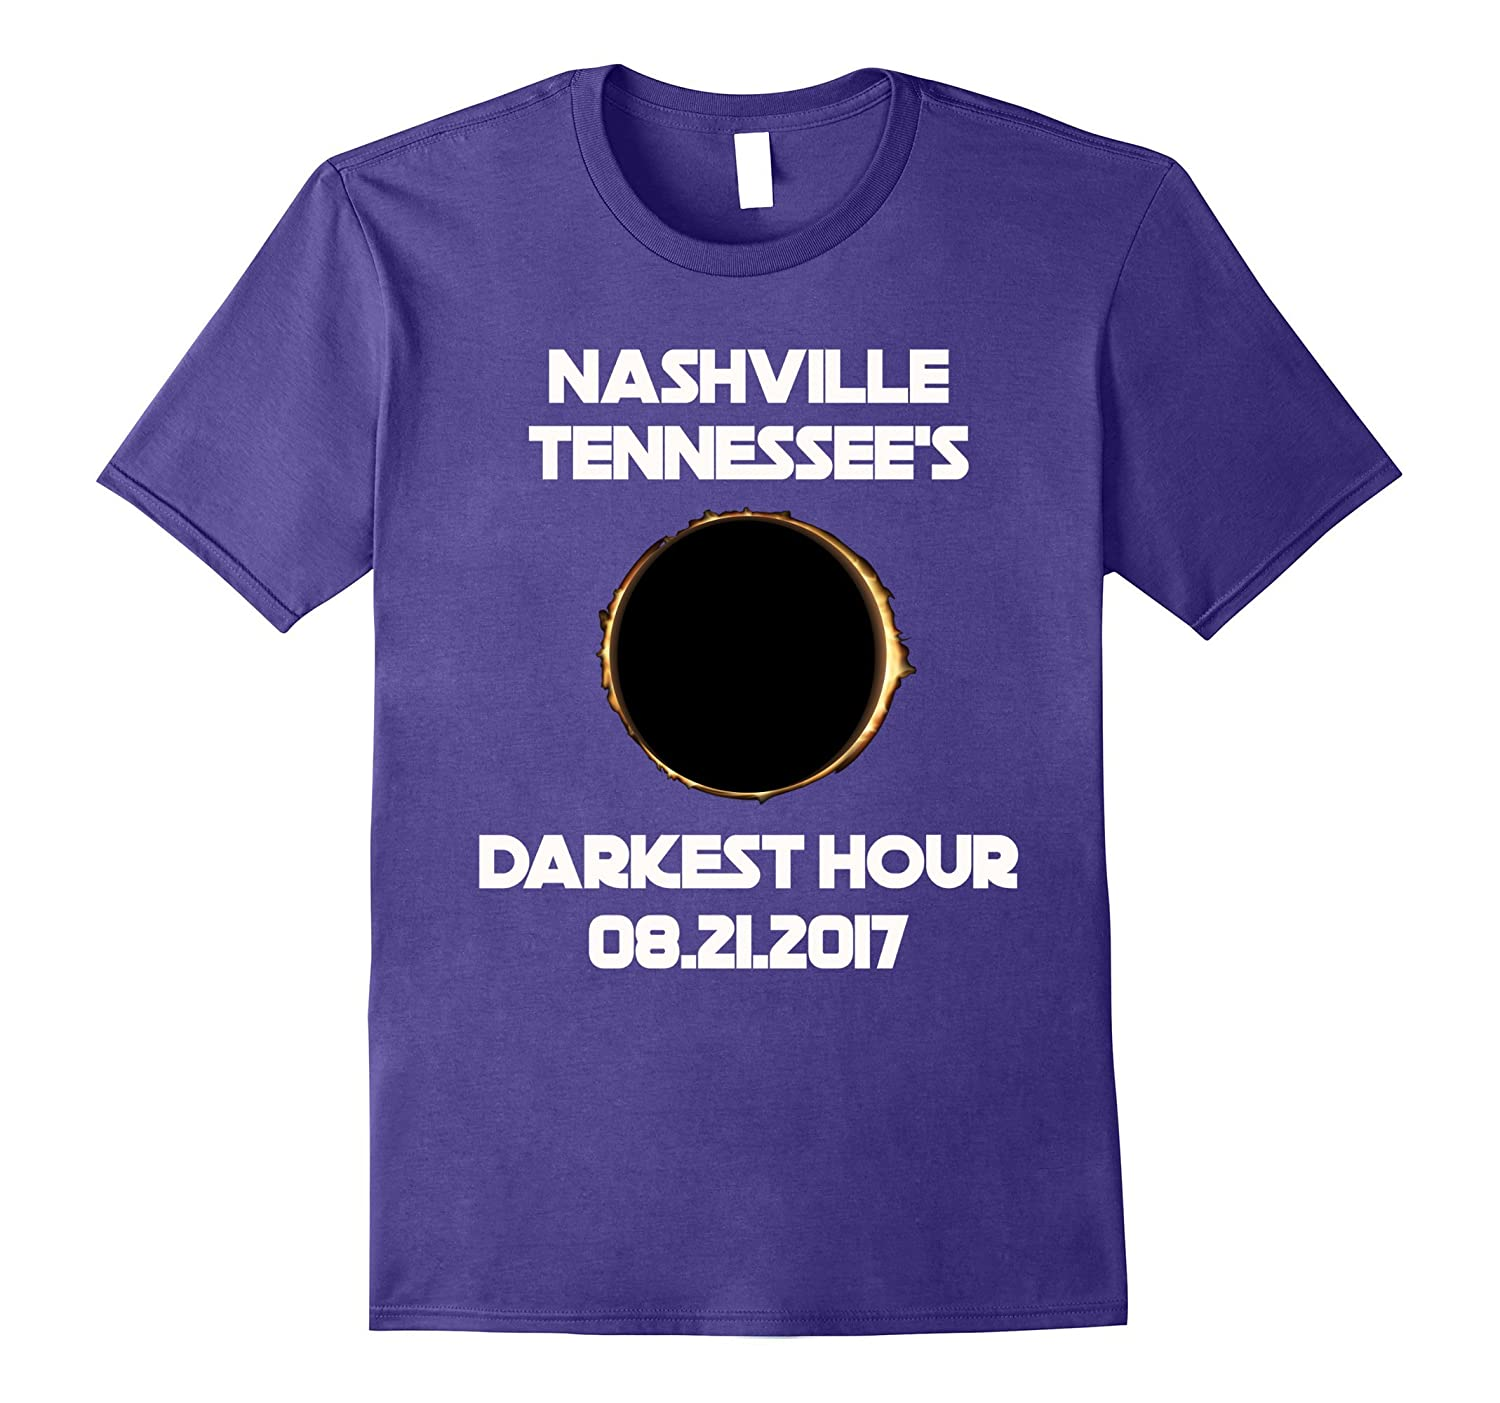 Nashville, Tennessee's Solar Eclipse 2017 T-shirt-Art